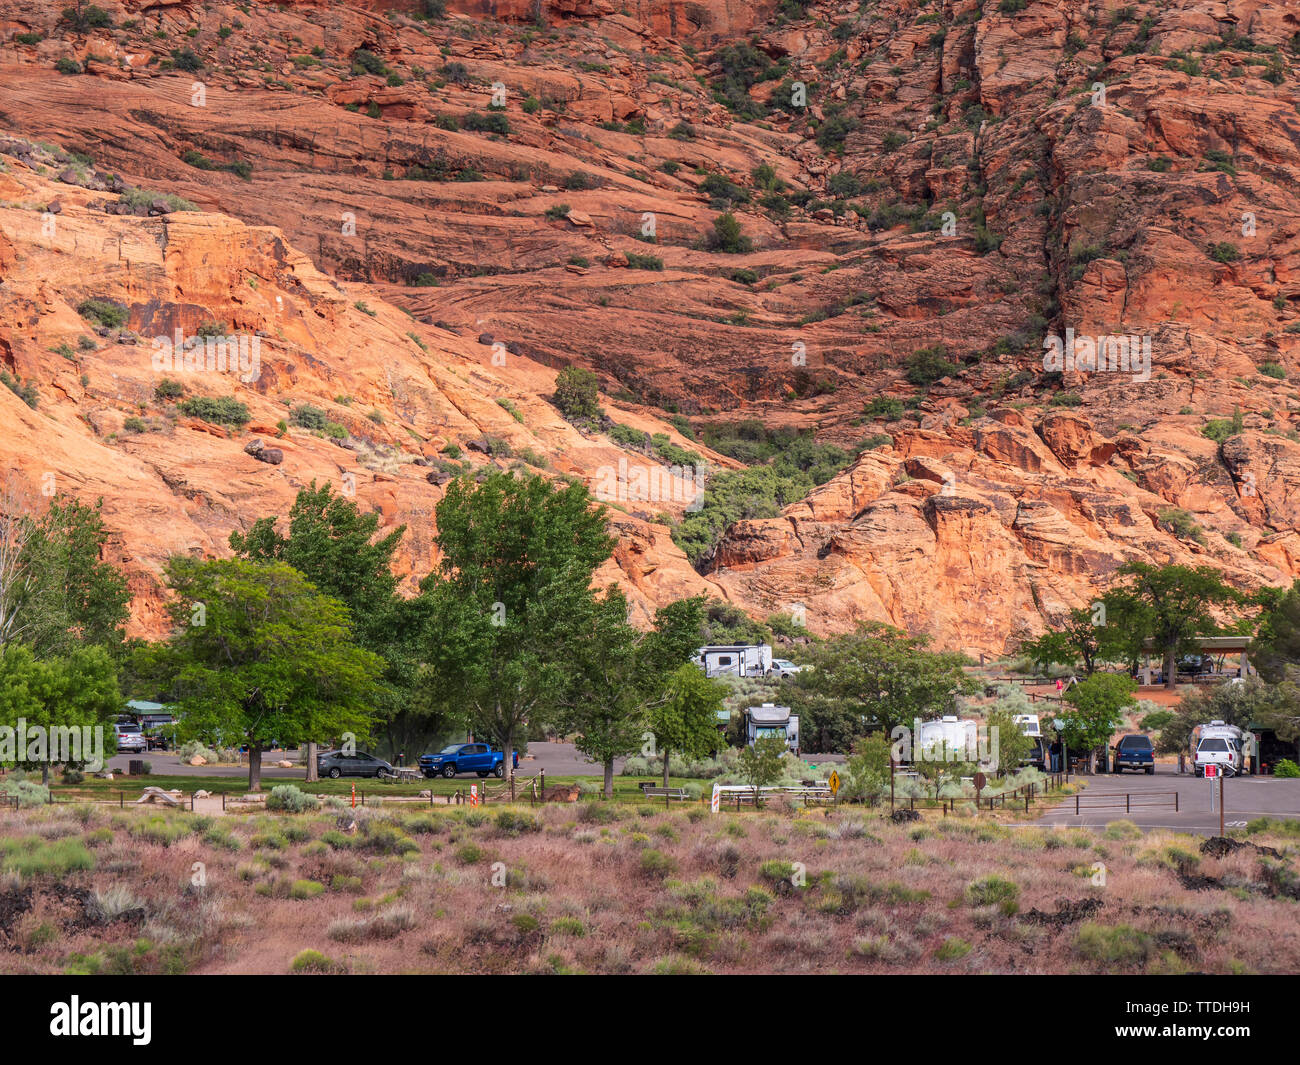 Campground, Snow Canyon State Park, Saint George, Utah. - Stock Image